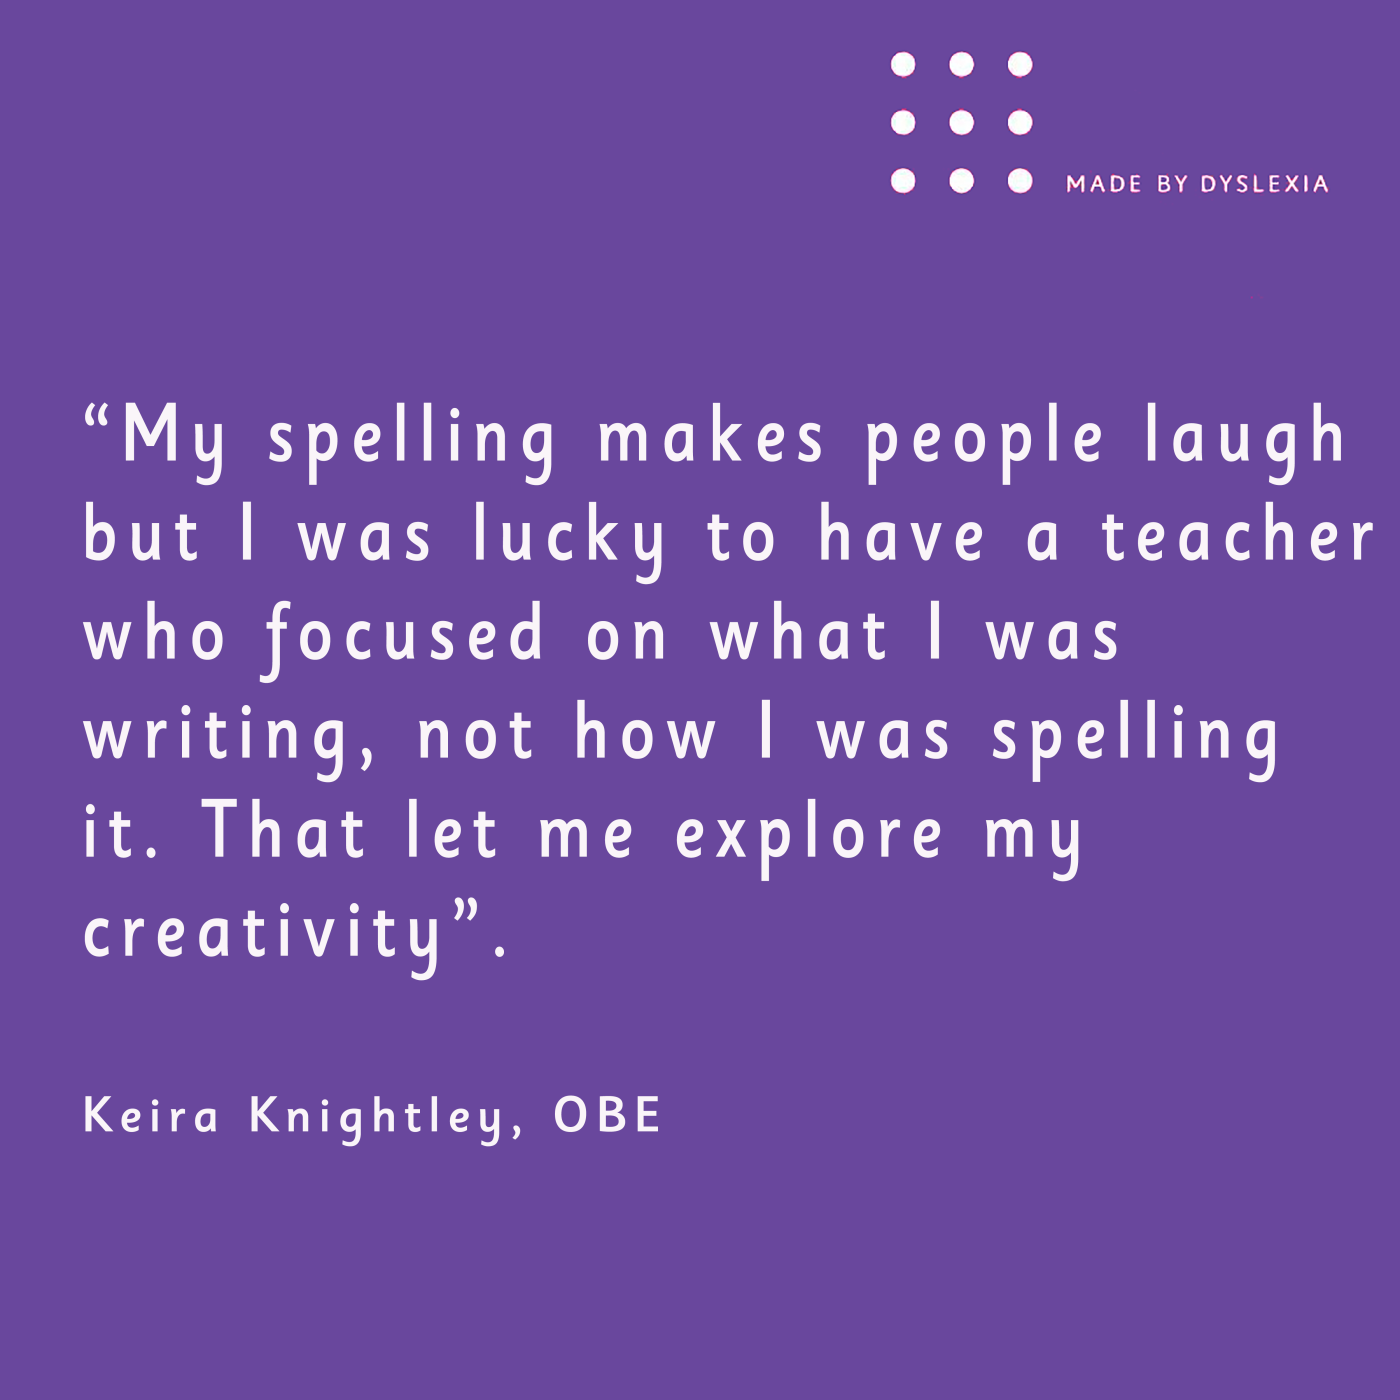 Keira Knightley says she was luck y to have a teacher who was focused on writing not spelling